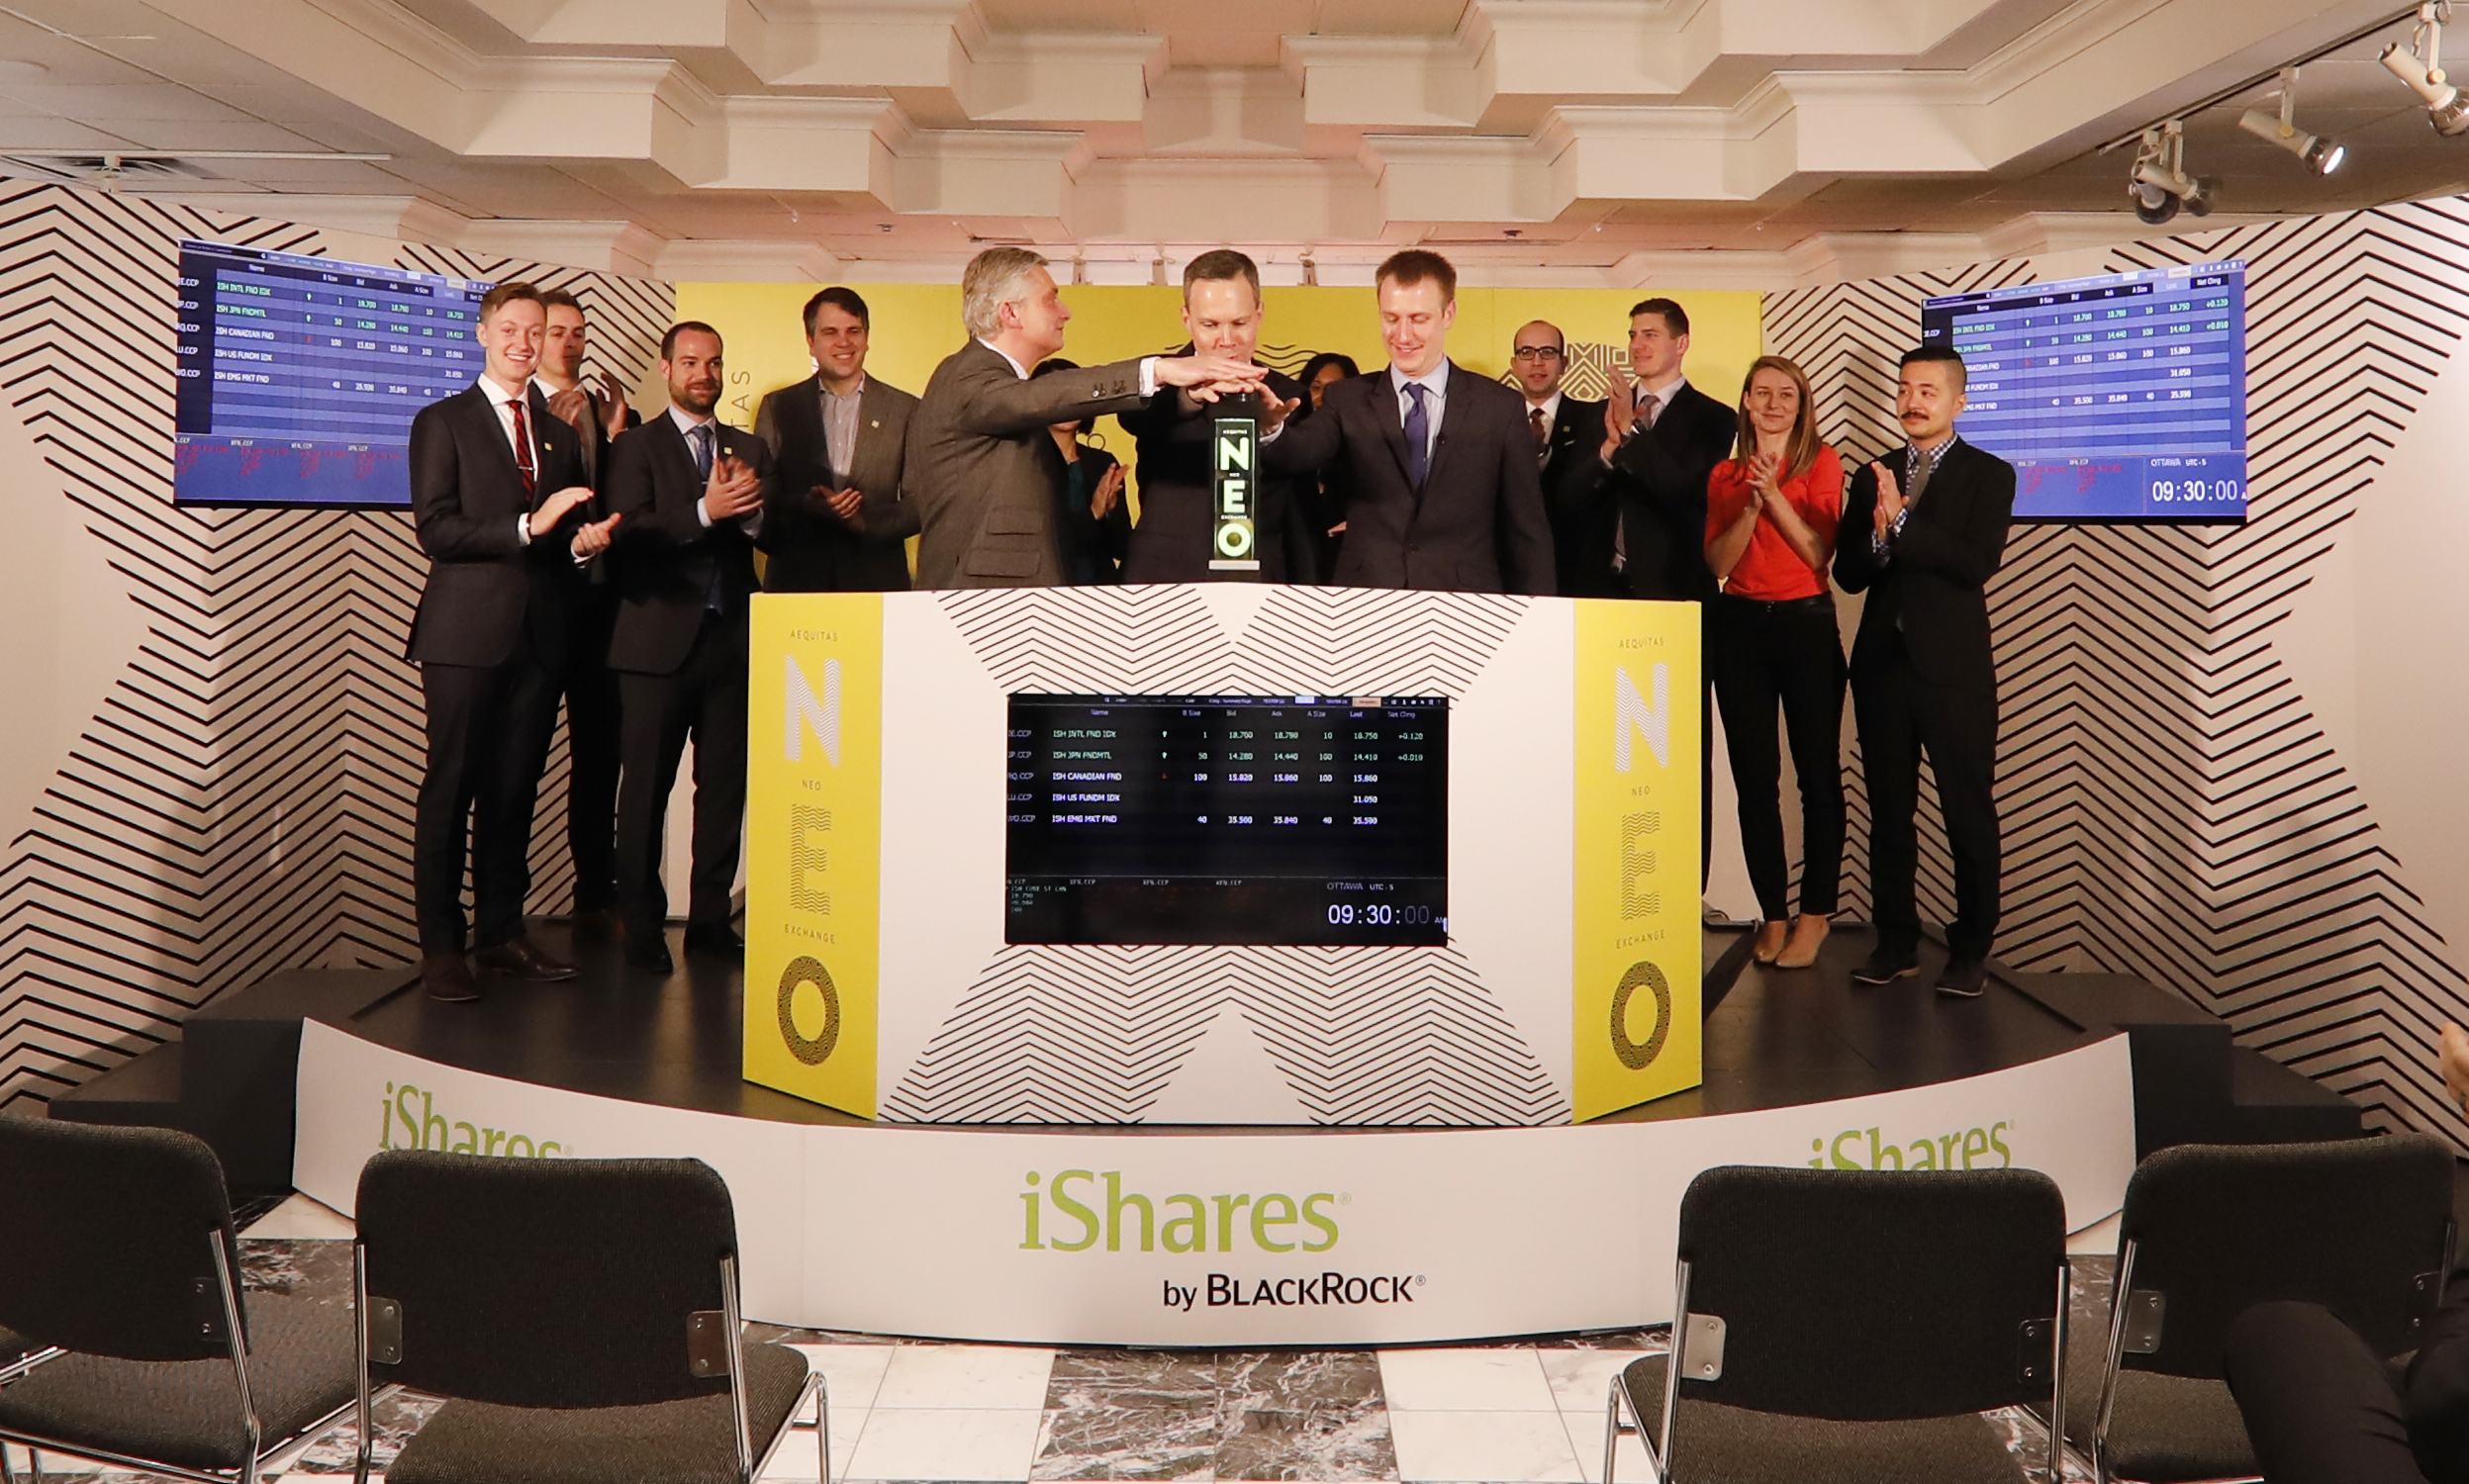 """BlackRock Asset Management Canada Limited (""""BlackRock Canada""""), including Head of iShares, Warren Collier, joined Jos Schmitt, President and Chief Executive Officer, Aequitas NEO Exchange Inc. (""""NEO Exchange""""), to open the market to launch select iShares exchange-traded-funds (ETFs). BlackRock Canada is a global leader in investment management, risk management and advisory services for institutional and retail clients. The select iShares ETFs migrated from the Toronto Stock Exchange and commenced trading on the NEO Exchange on February 22, 2017. The launched ETFs include common units and advisor class units of the following iShares Funds: iShares Canadian Fundamental Index ETF (CRQ, CRQ.A); iShares Emerging Markets Fundamental Index ETF (CWO, CWO.A); iShares International Fundamental Index ETF (CIE, CIE.A); iShares Japan Fundamental Index ETF CAD-Hedged (CJP, CJP.A), and; iShares US Fundamental Index ETF (CLU, CLU.A, CLU.B, CLU.C). (Photo: Business Wire)"""